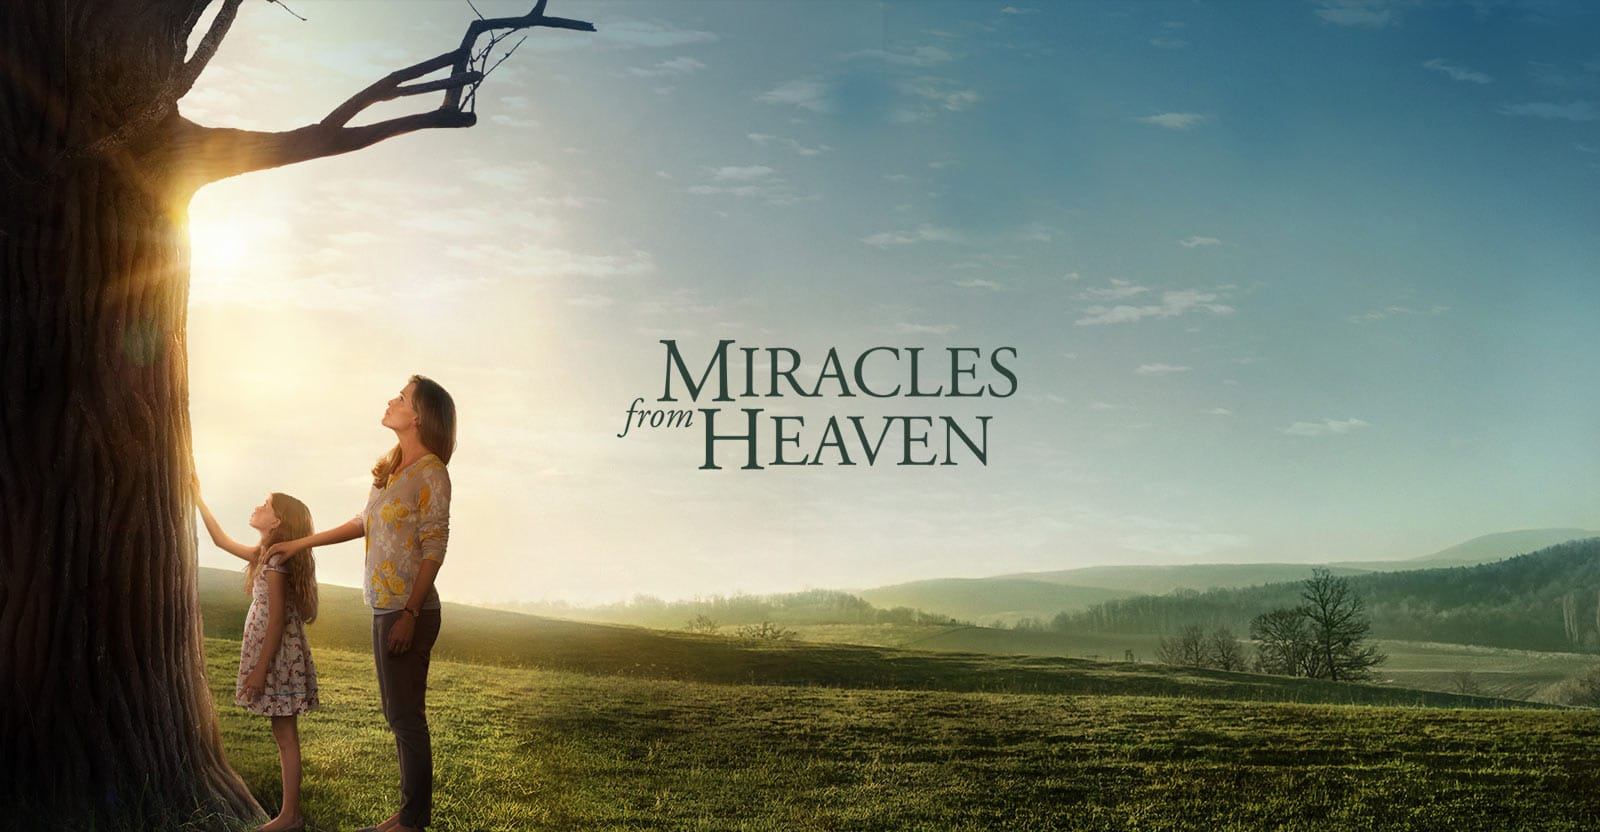 digestive disease miracles from heaven